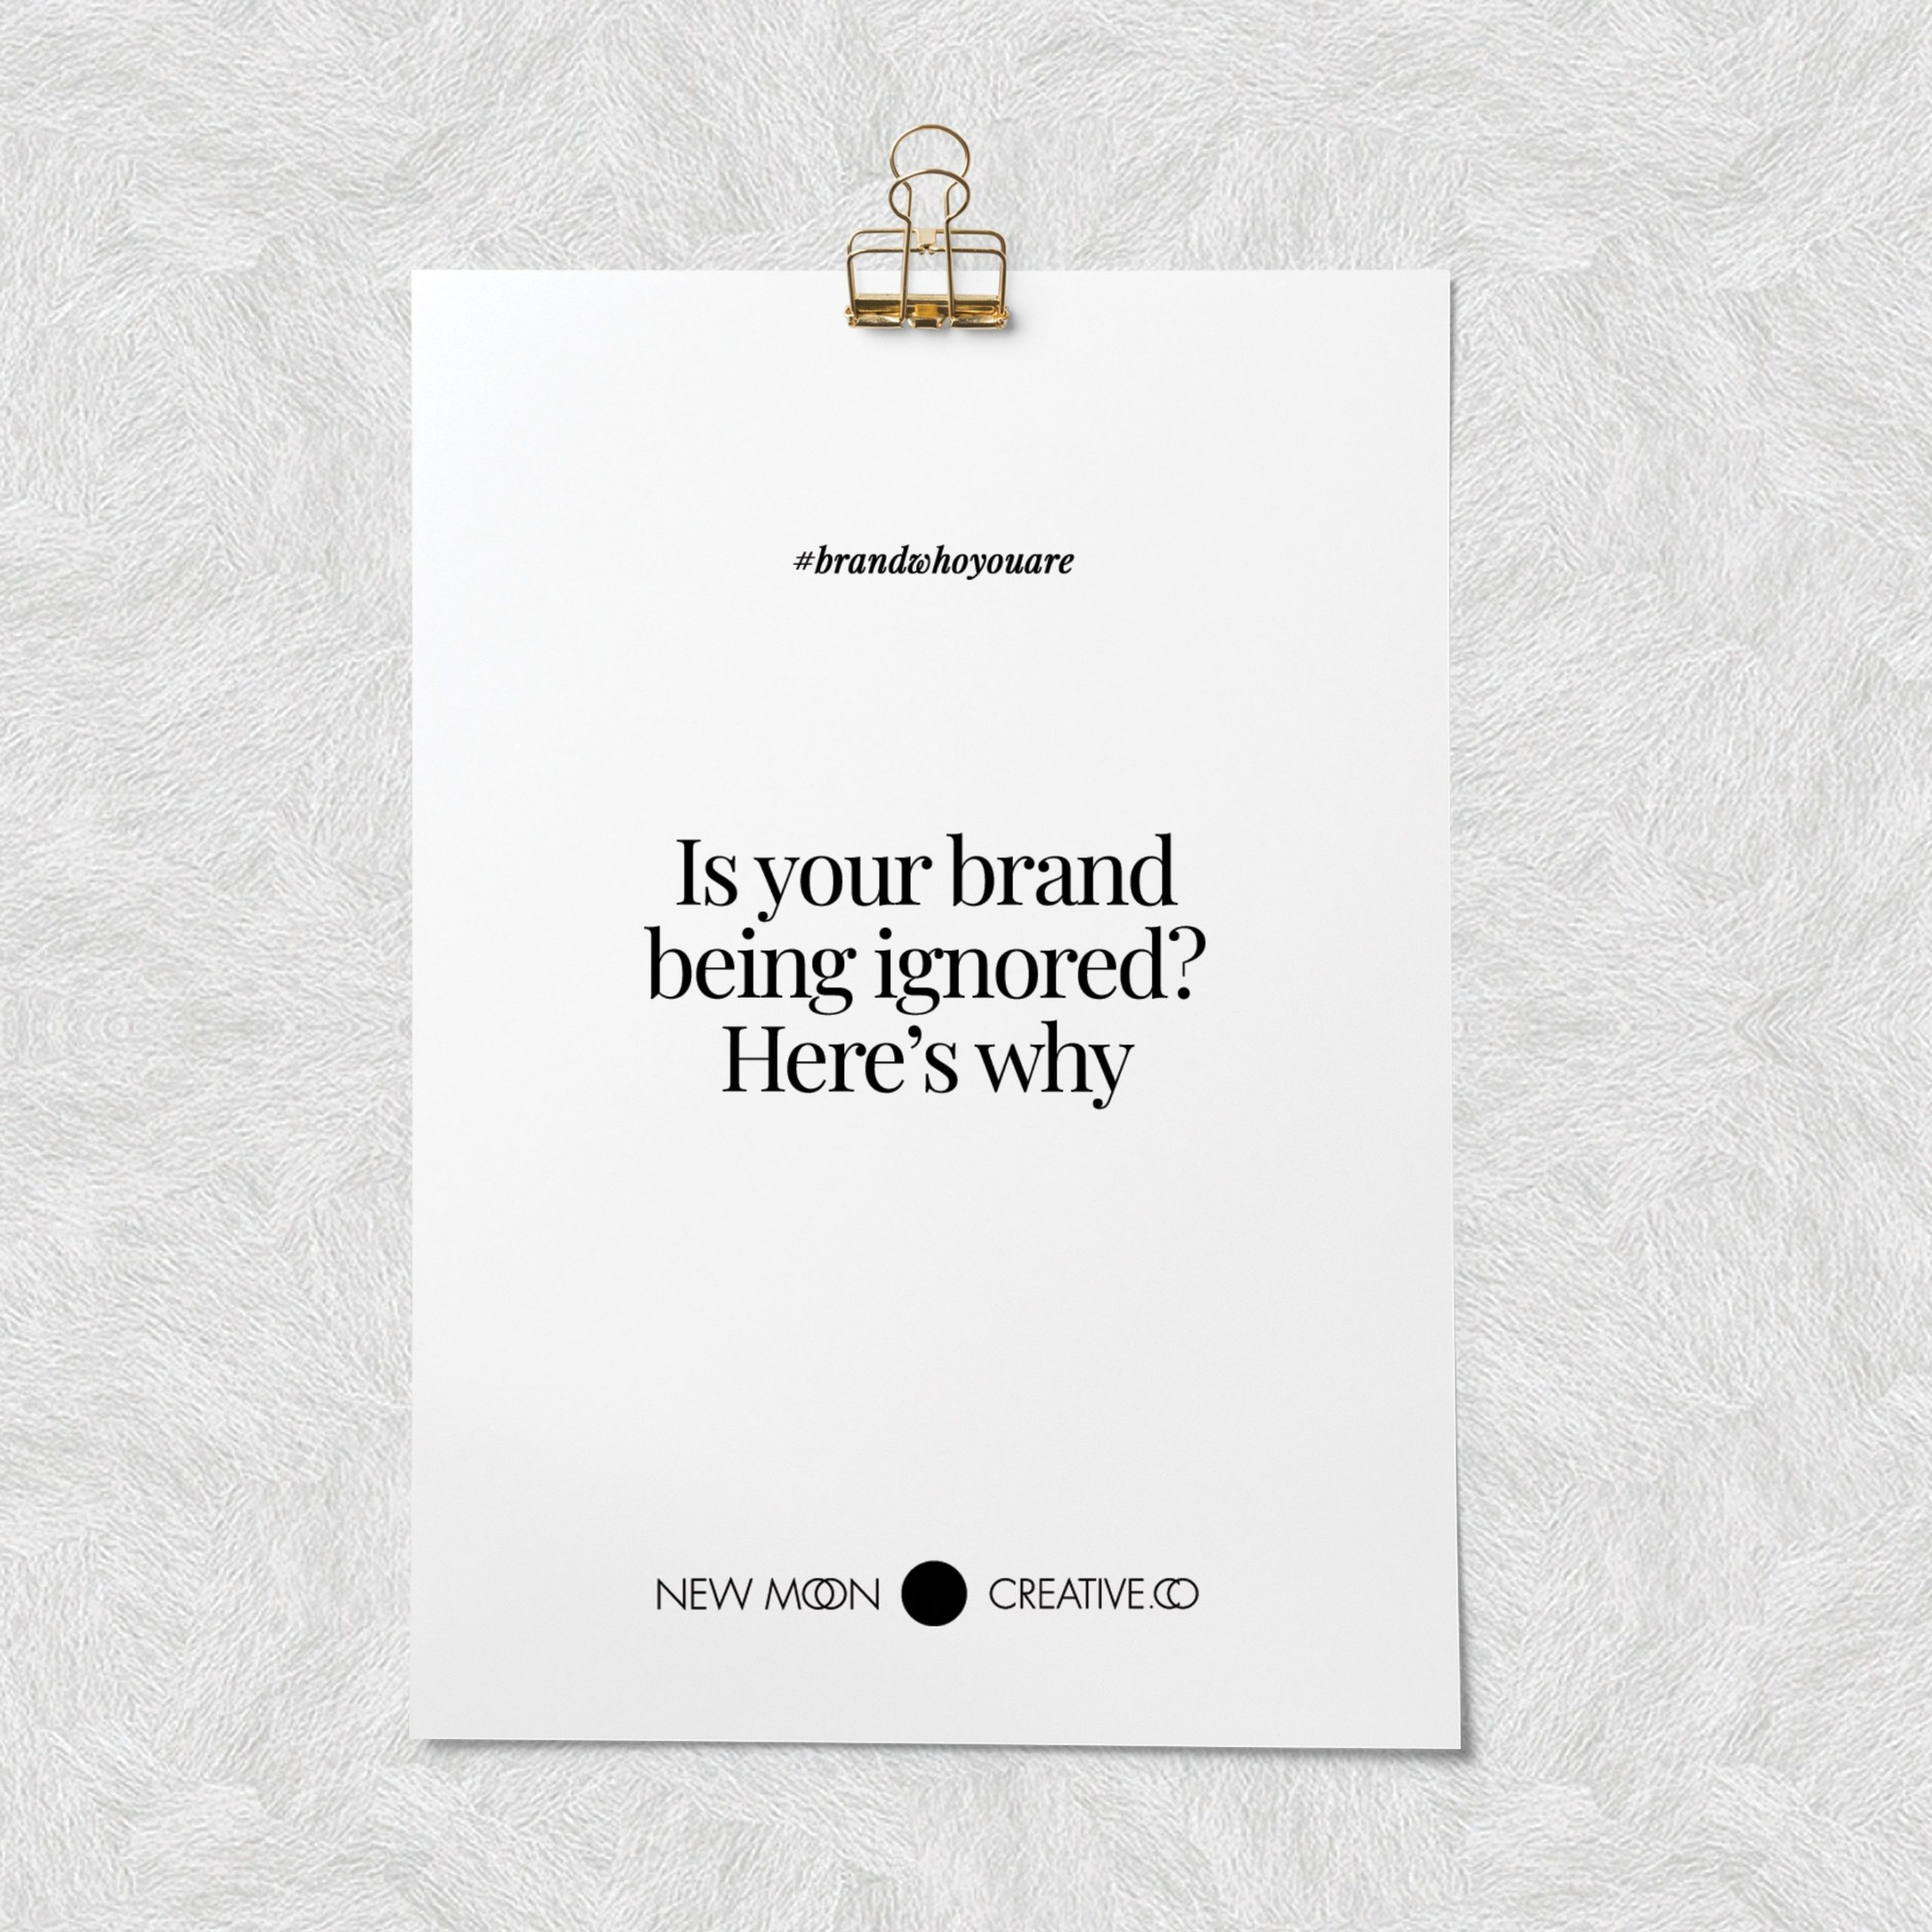 Is your brand being ignored? Here's why